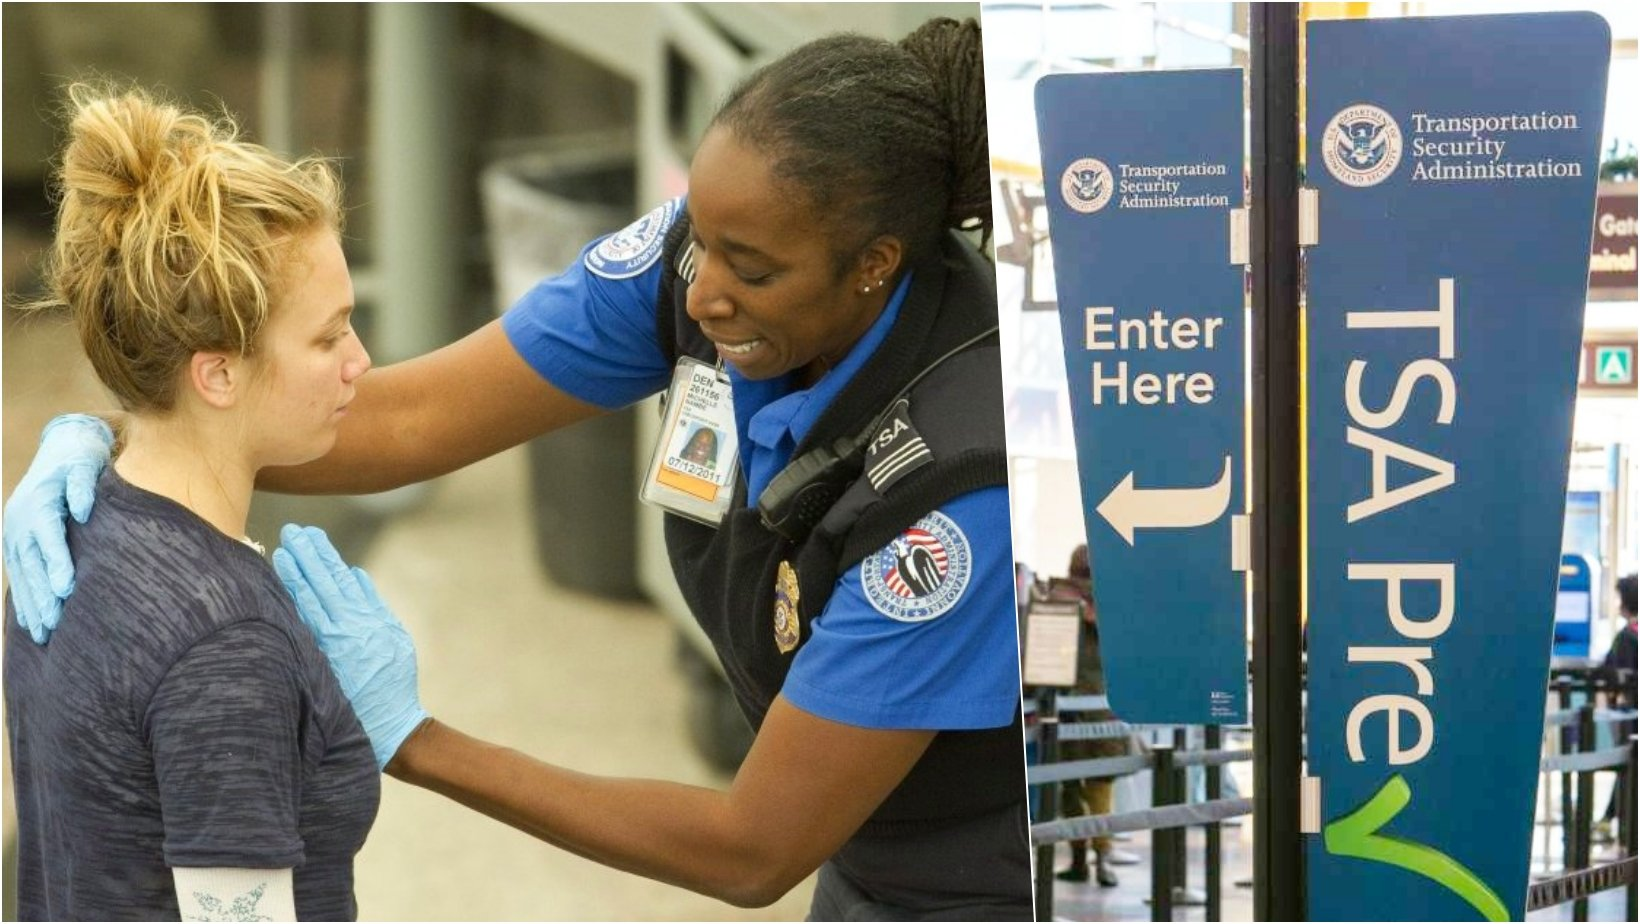 6 facebook cover 5.jpg?resize=412,232 - Furious Mom Filed A Lawsuit Against TSA After Her Transgender Daughter Was Traumatized By Strip Search